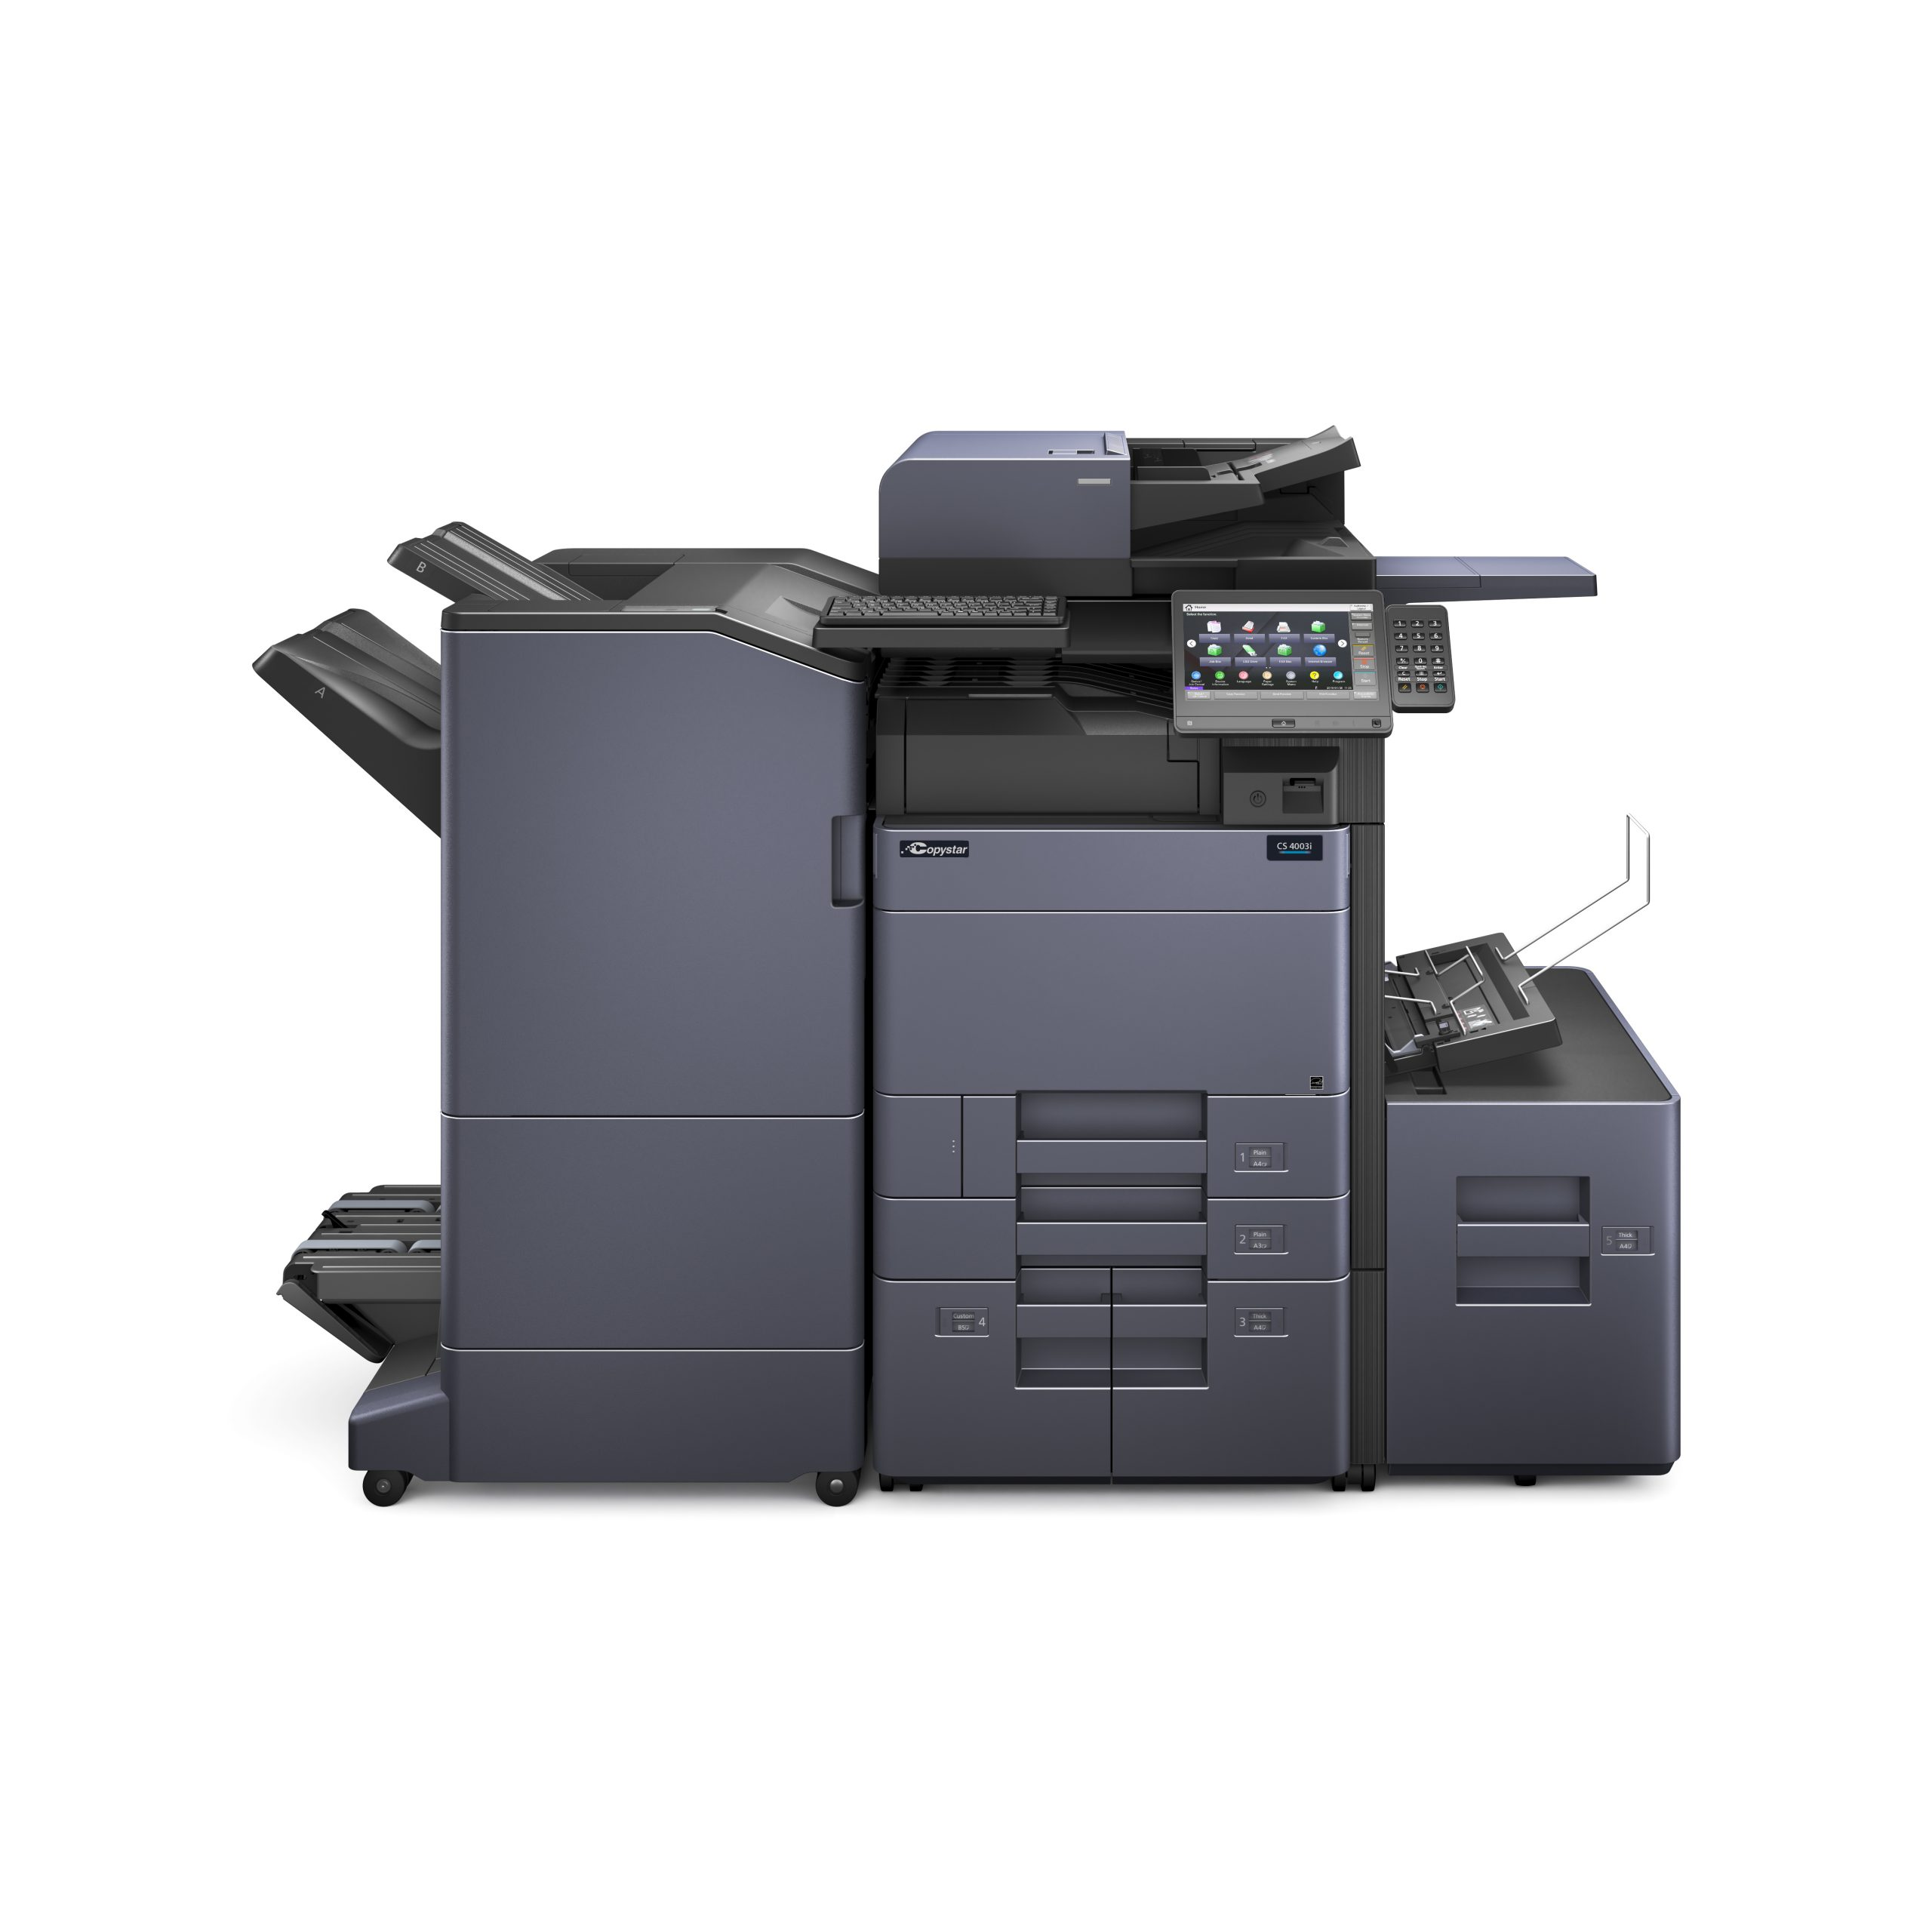 kyocera CS_4003i COPY MACHINE LEASING WI